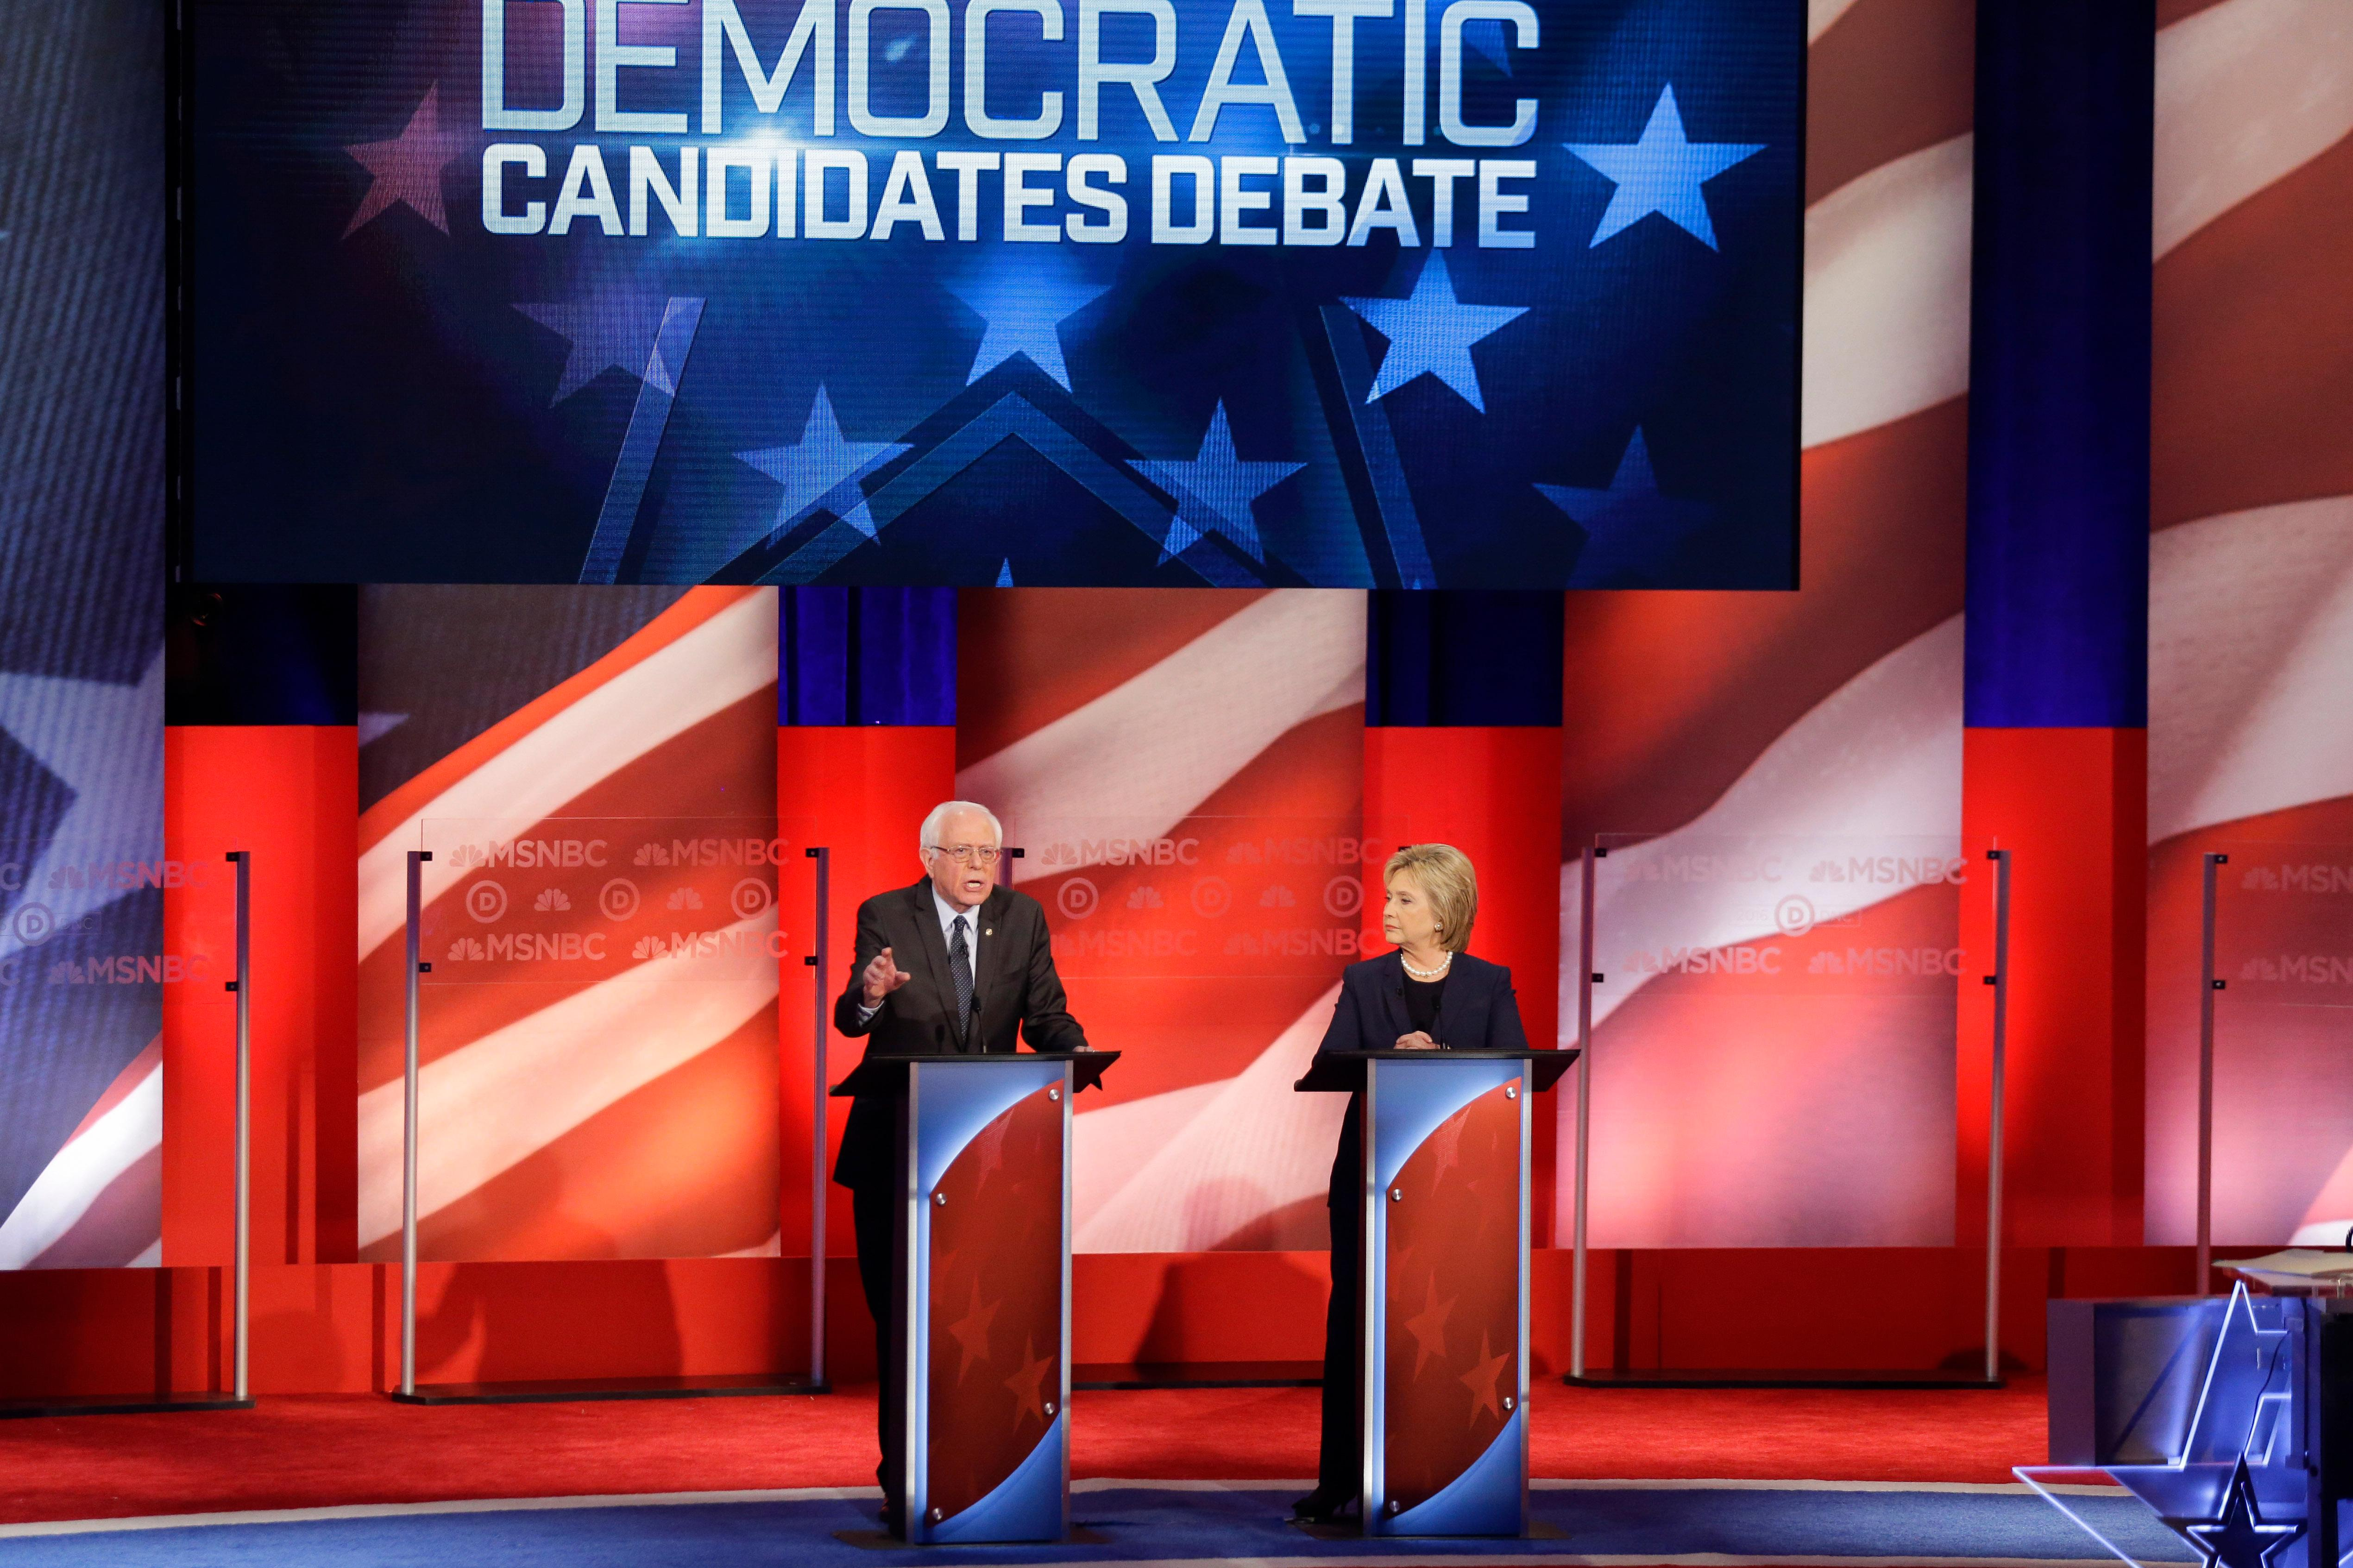 Democratic presidential candidate, Sen. Bernie Sanders, I-Vt,  makes his opening statement as Democratic presidential candidate, Hillary Clinton  listens during a Democratic presidential primary debate hosted by MSNBC at the University of New Hampshire Thursday, Feb. 4, 2016, in Durham, N.H. (AP Photo/David Goldman)